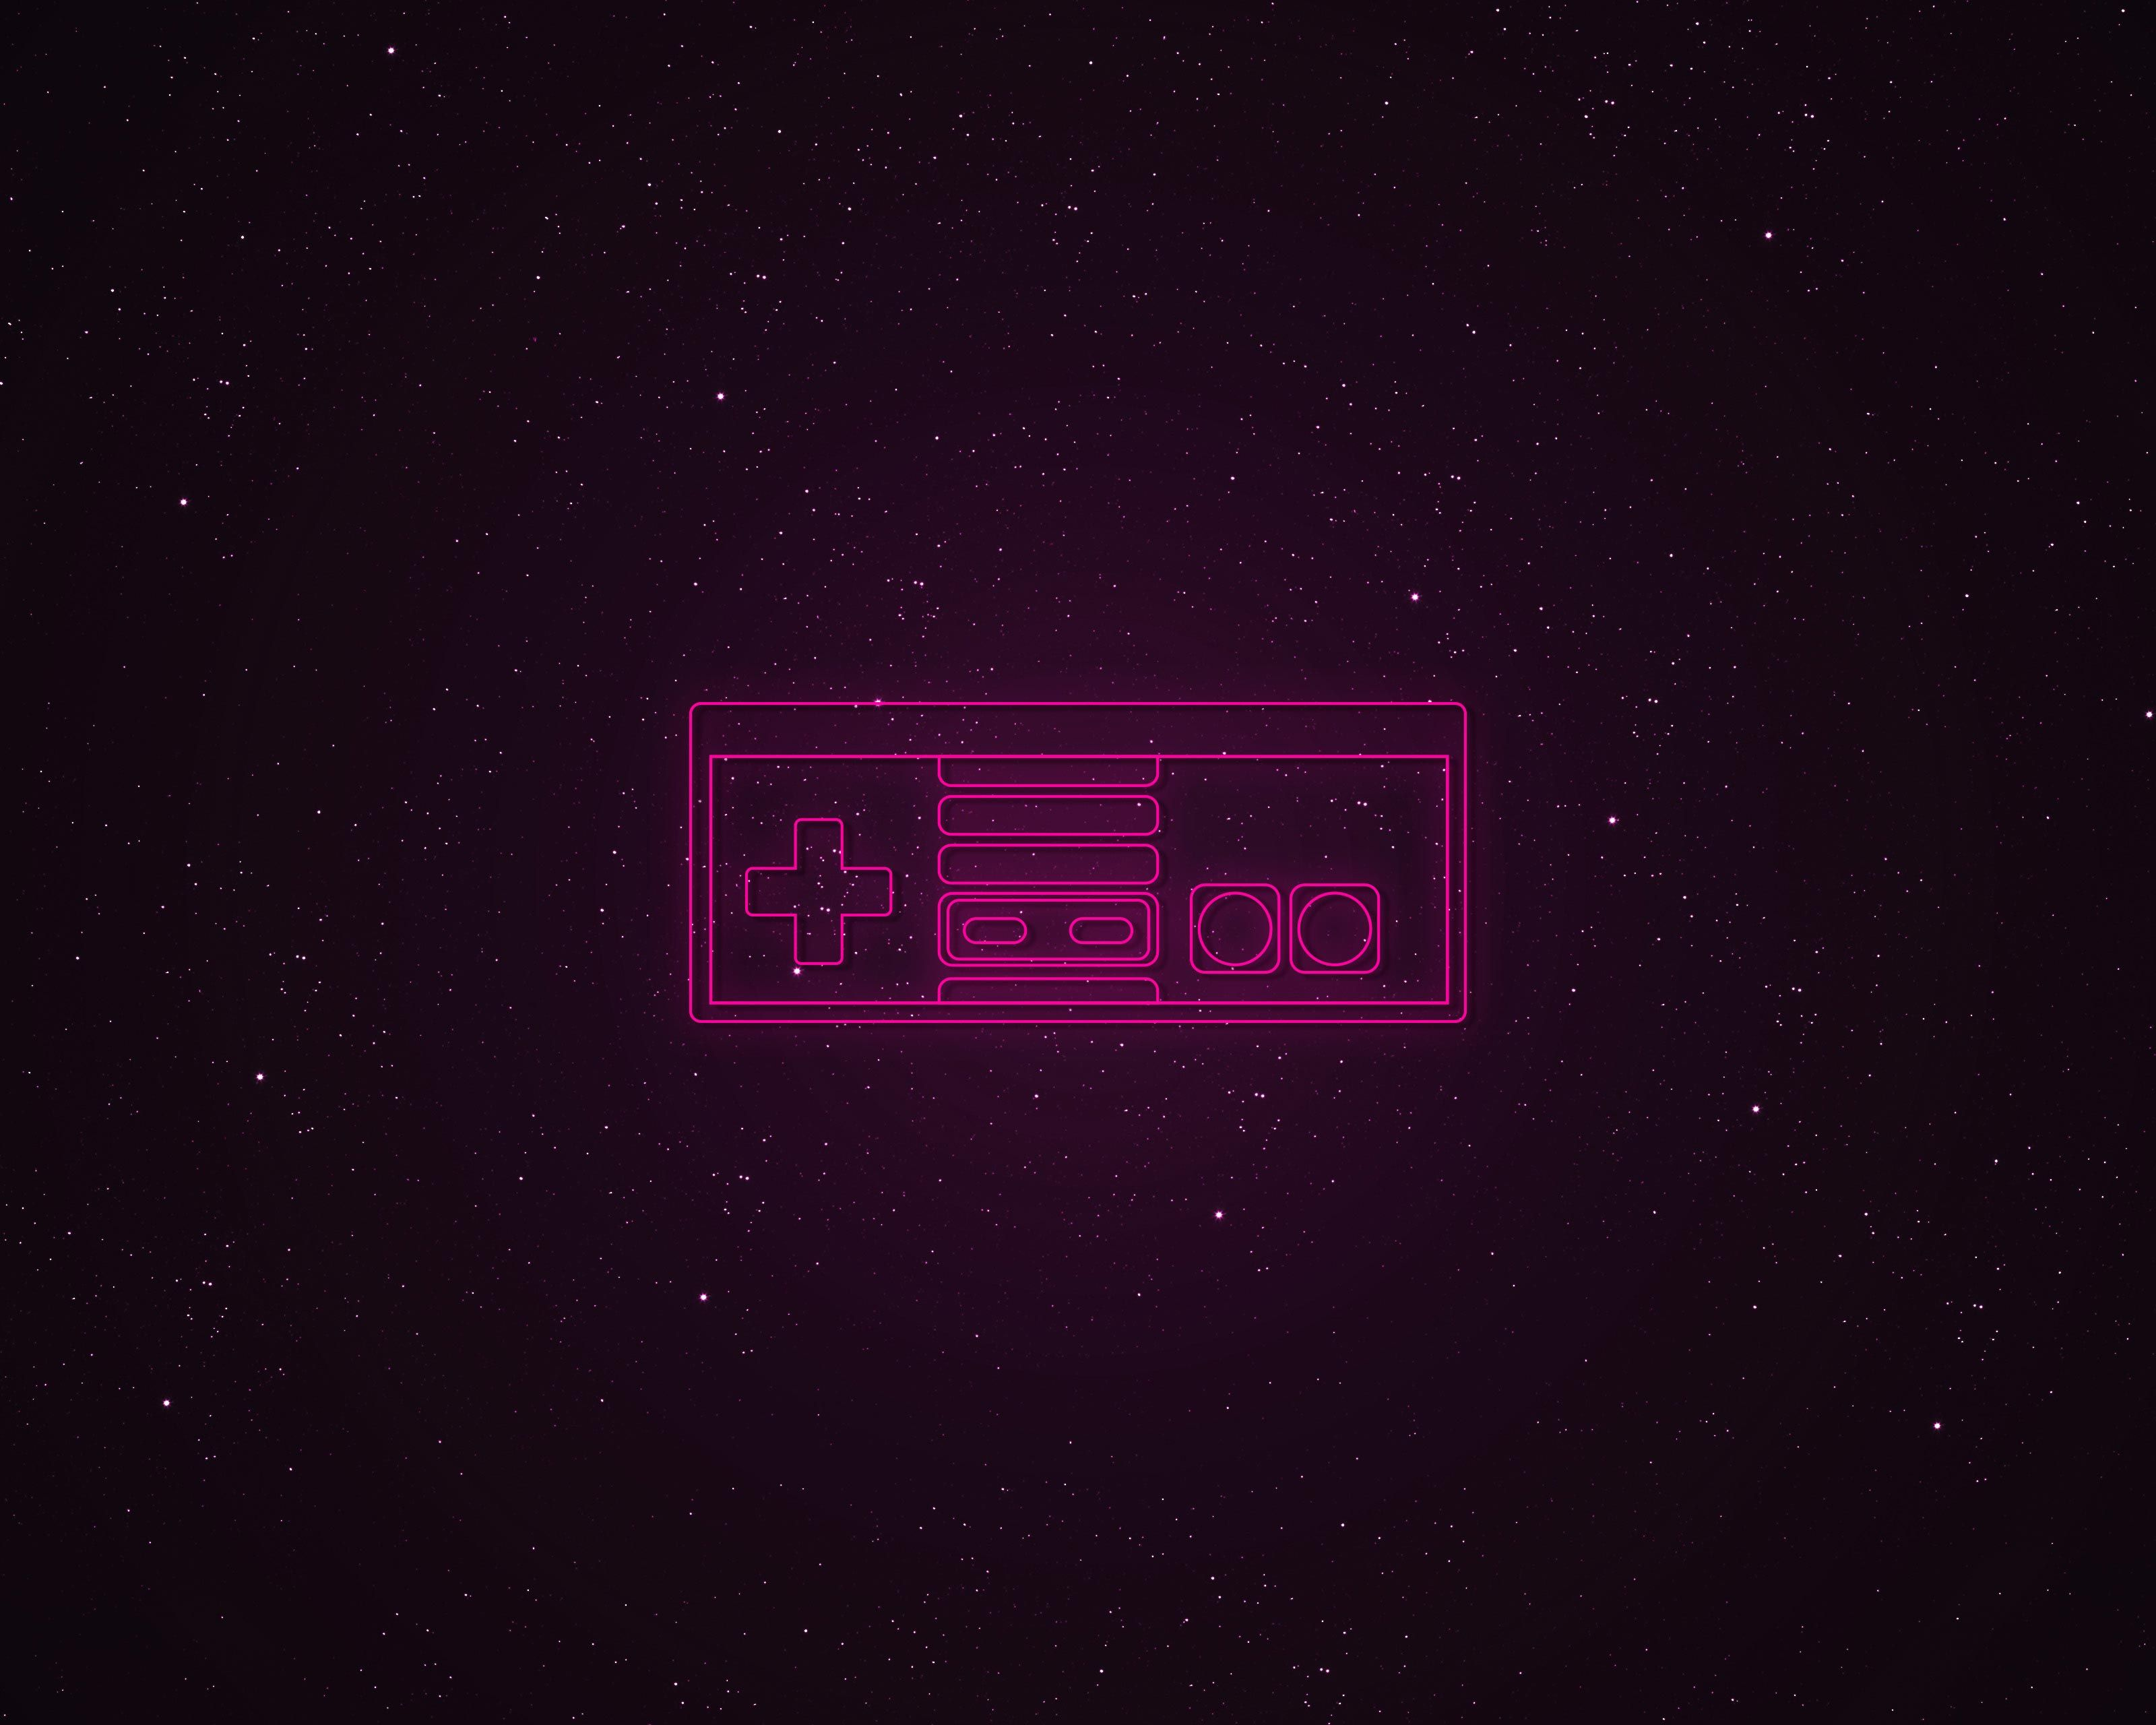 Google Wallpaper Hd Rad Pack 80 S Themed Hd Wallpapers Nate Wren Graphic